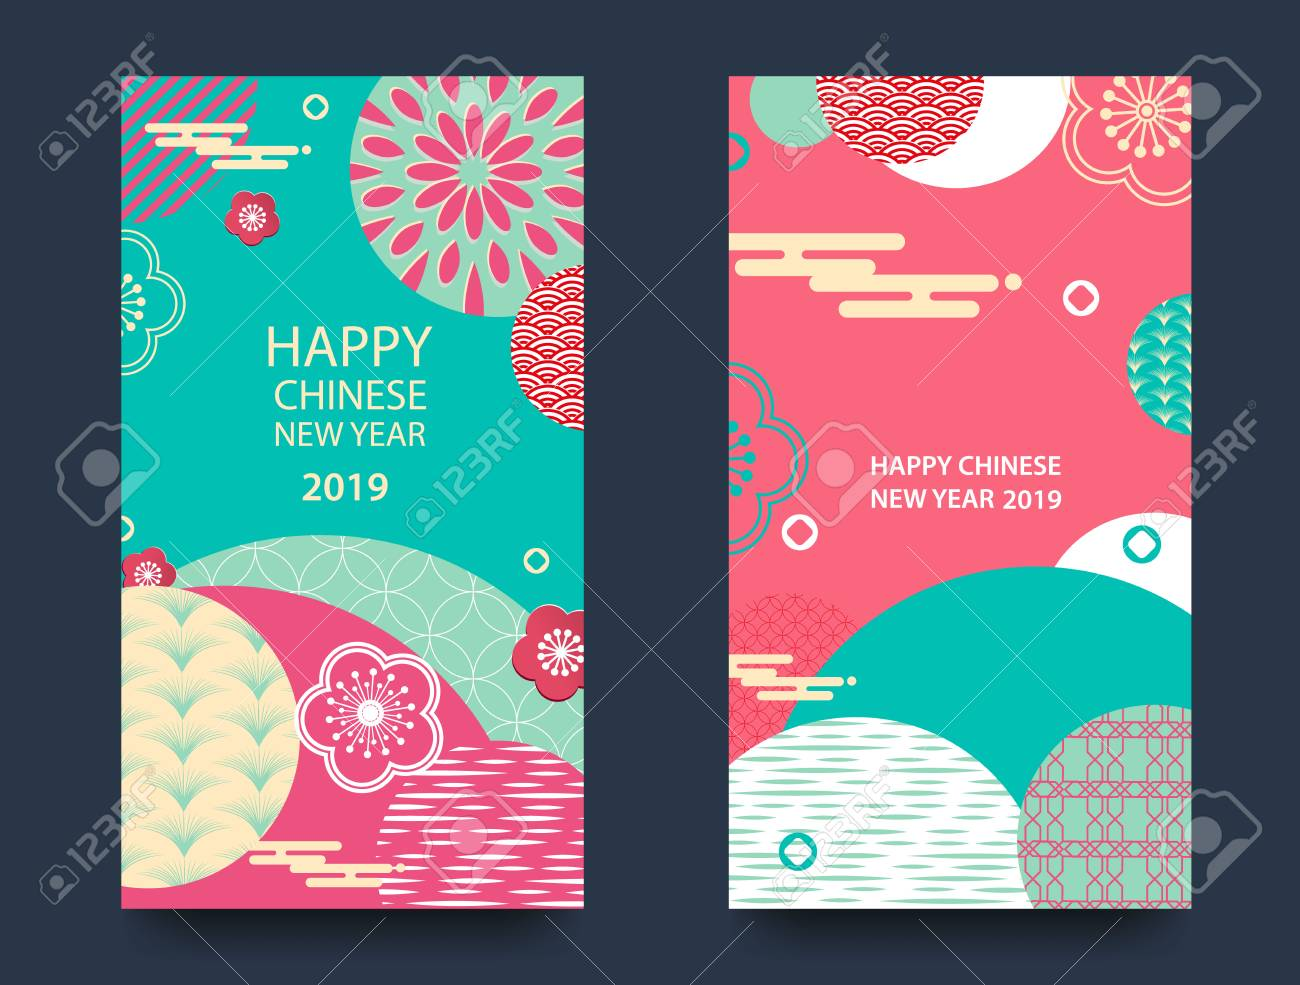 Happy New Year 2019 Chinese New Year Greeting Card Poster Flyer